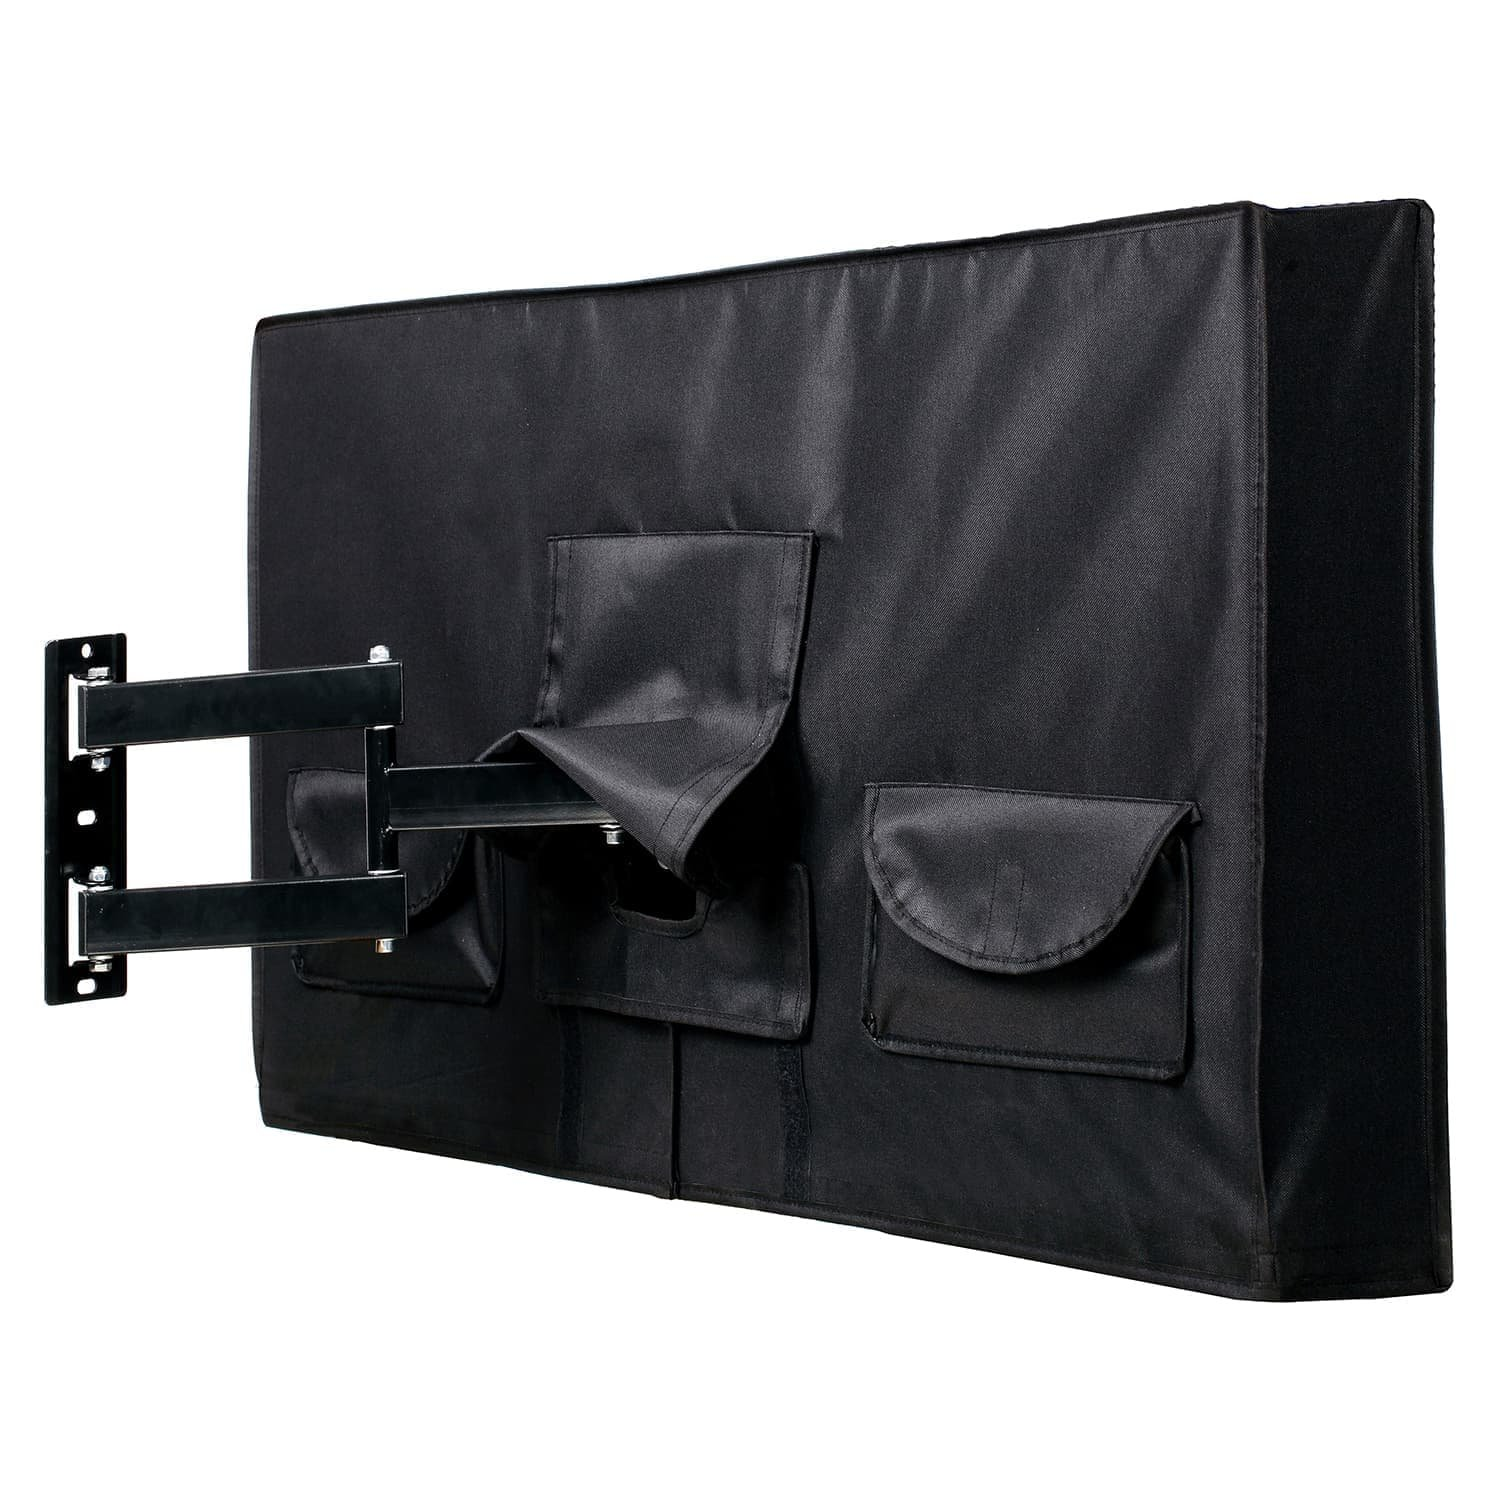 Outdoor TV Cover 52'' - 55'' - Fully Covered - Black - Weatherproof and Dust-Proof PVC Coated Oxford Fabric - Built to Last by Towber